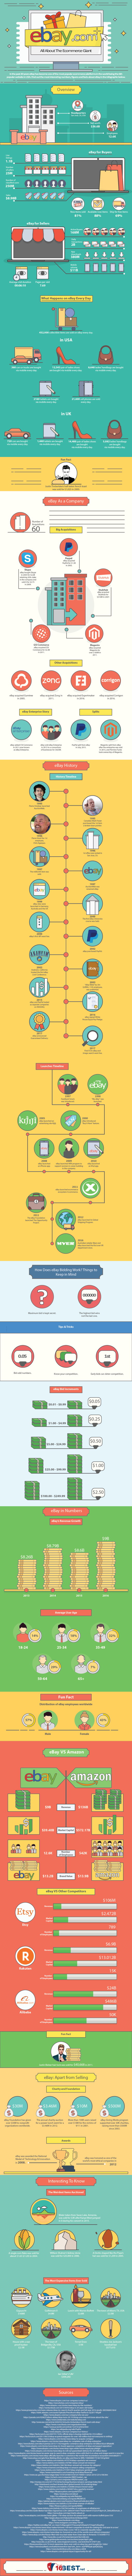 How to sell online successfully eBay infographic